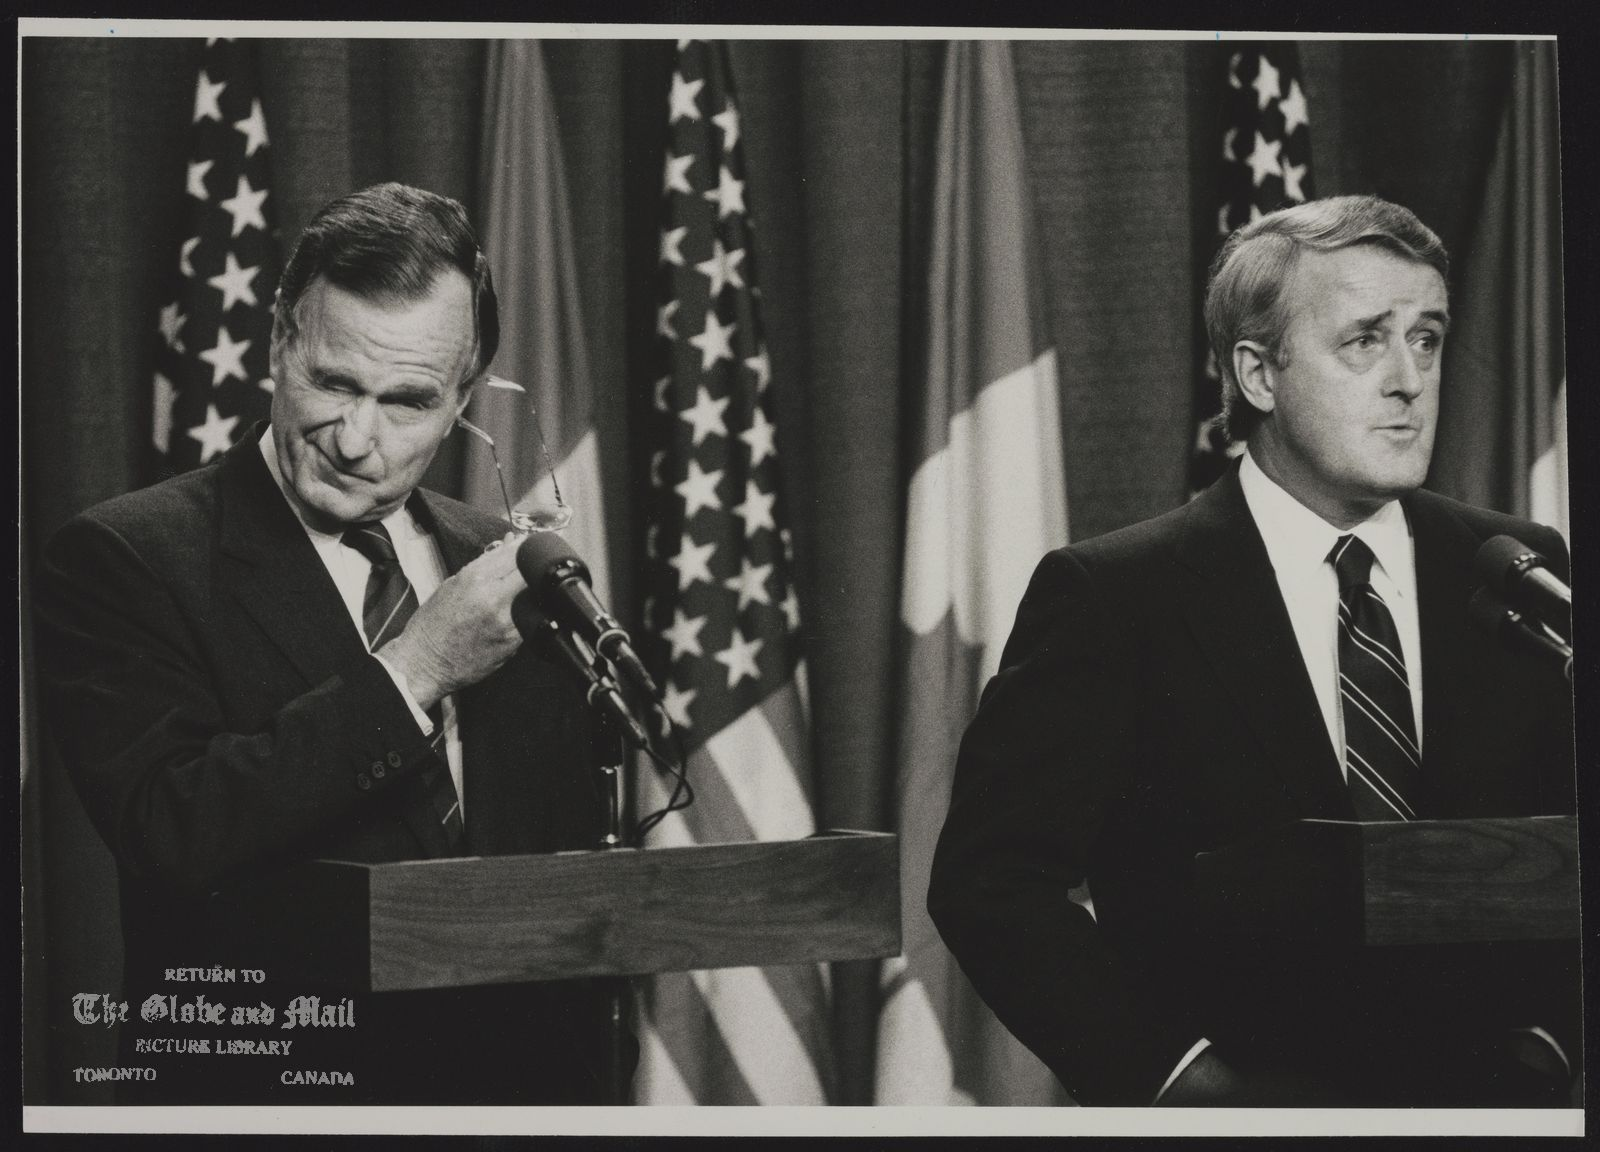 George BUSH Visit ot Canada 1990 U.S.A. Politician [With Brian Mulroney]